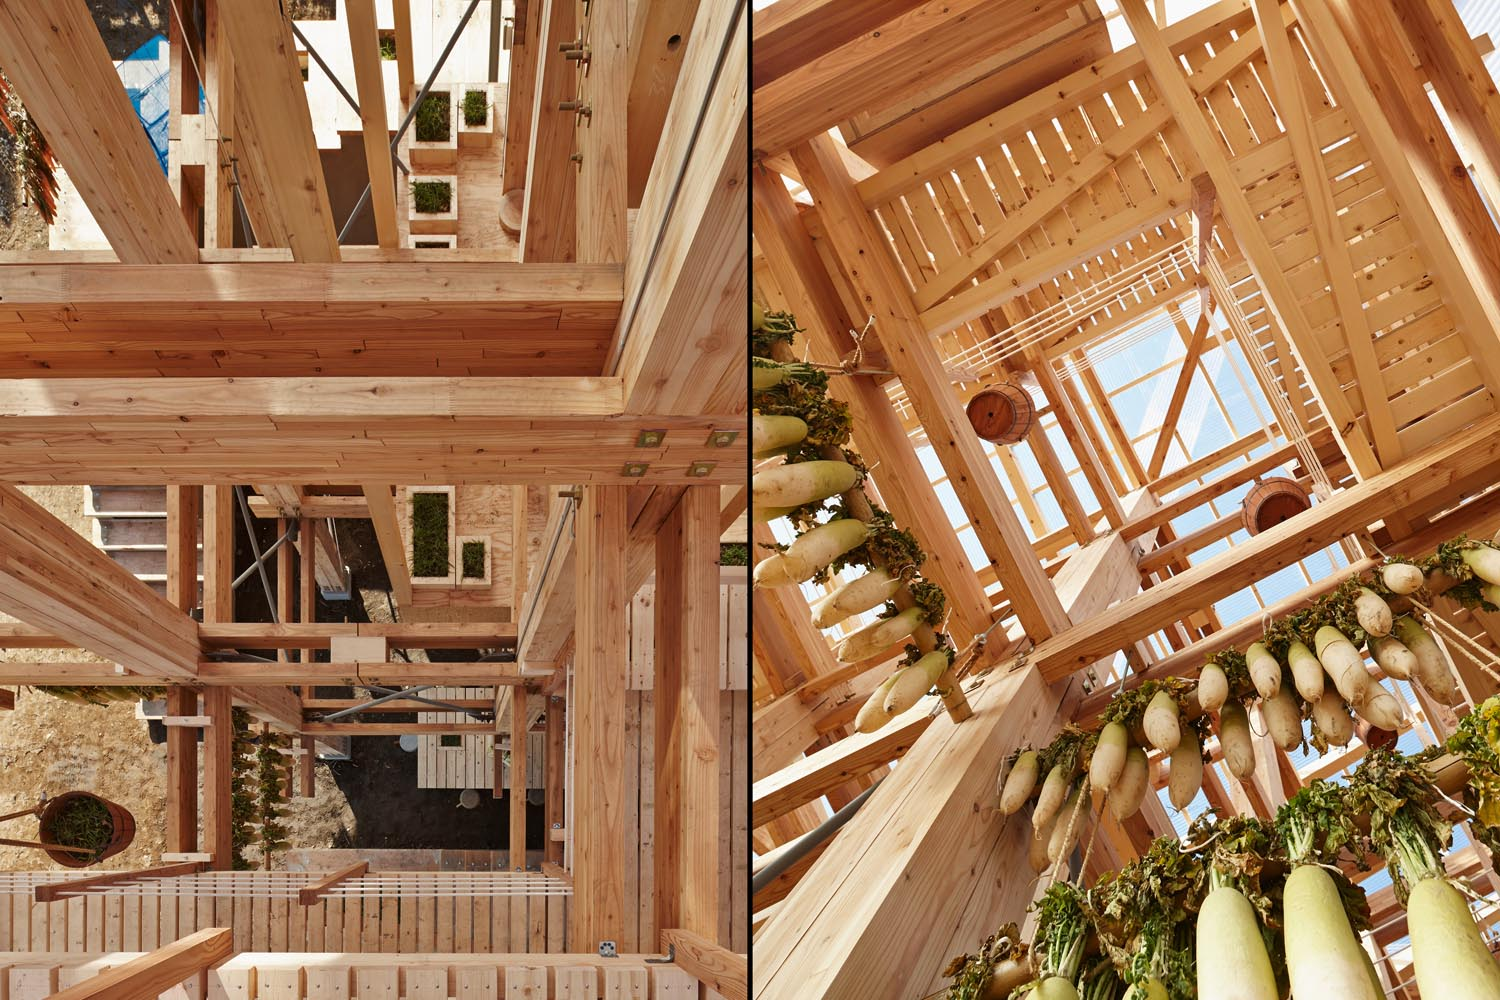 mm_Nest We Grow design by College of Environmental Design UC Berkeley + Kengo Kuma & Associates_09